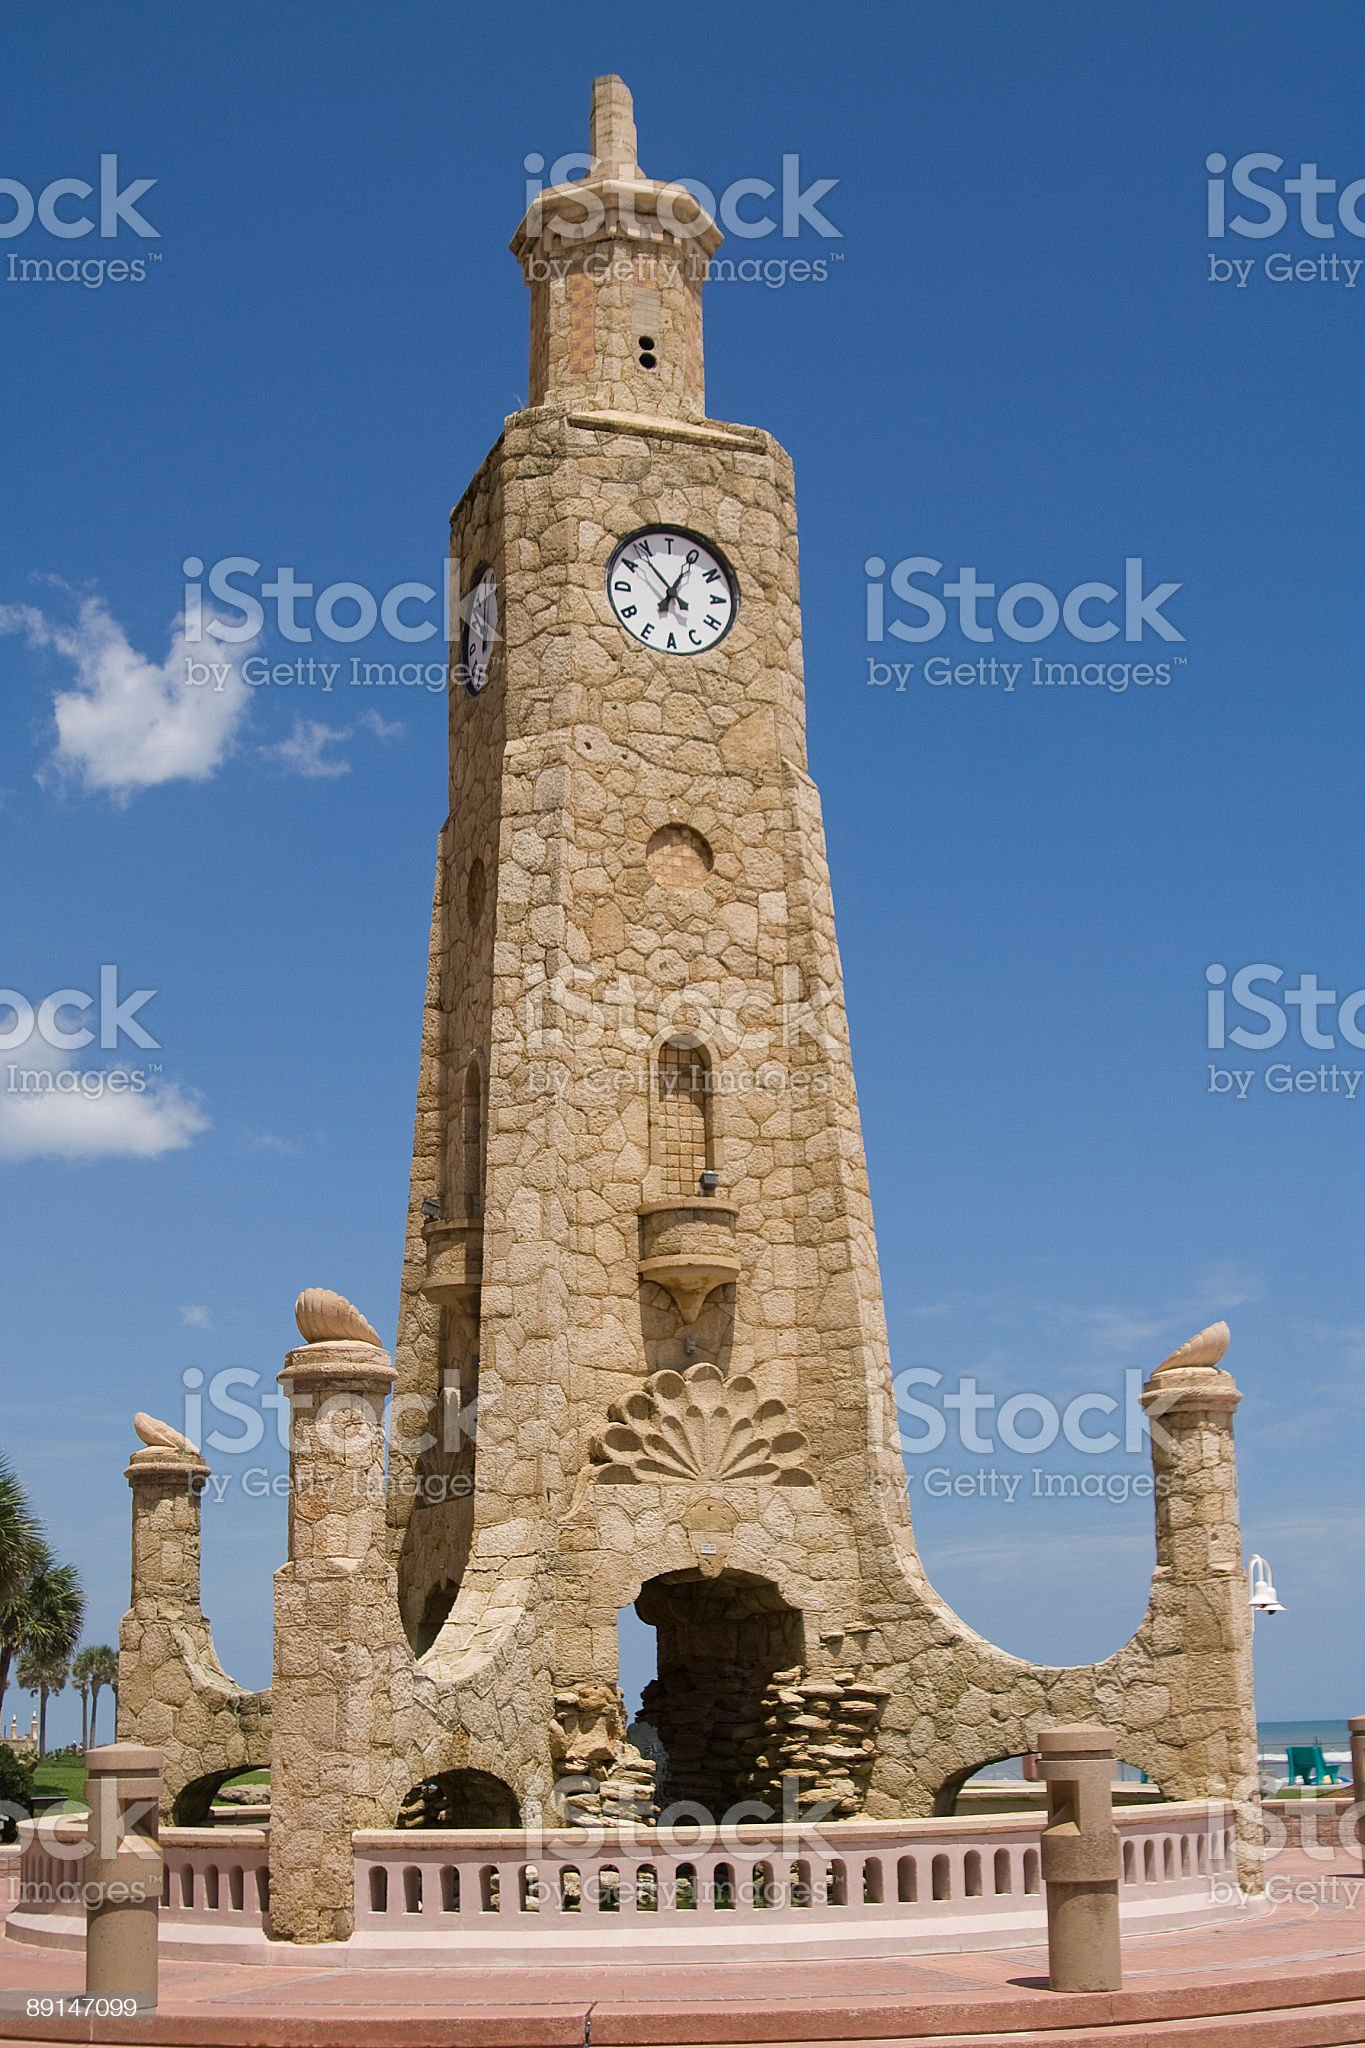 Daytona Clock Tower royalty-free stock photo